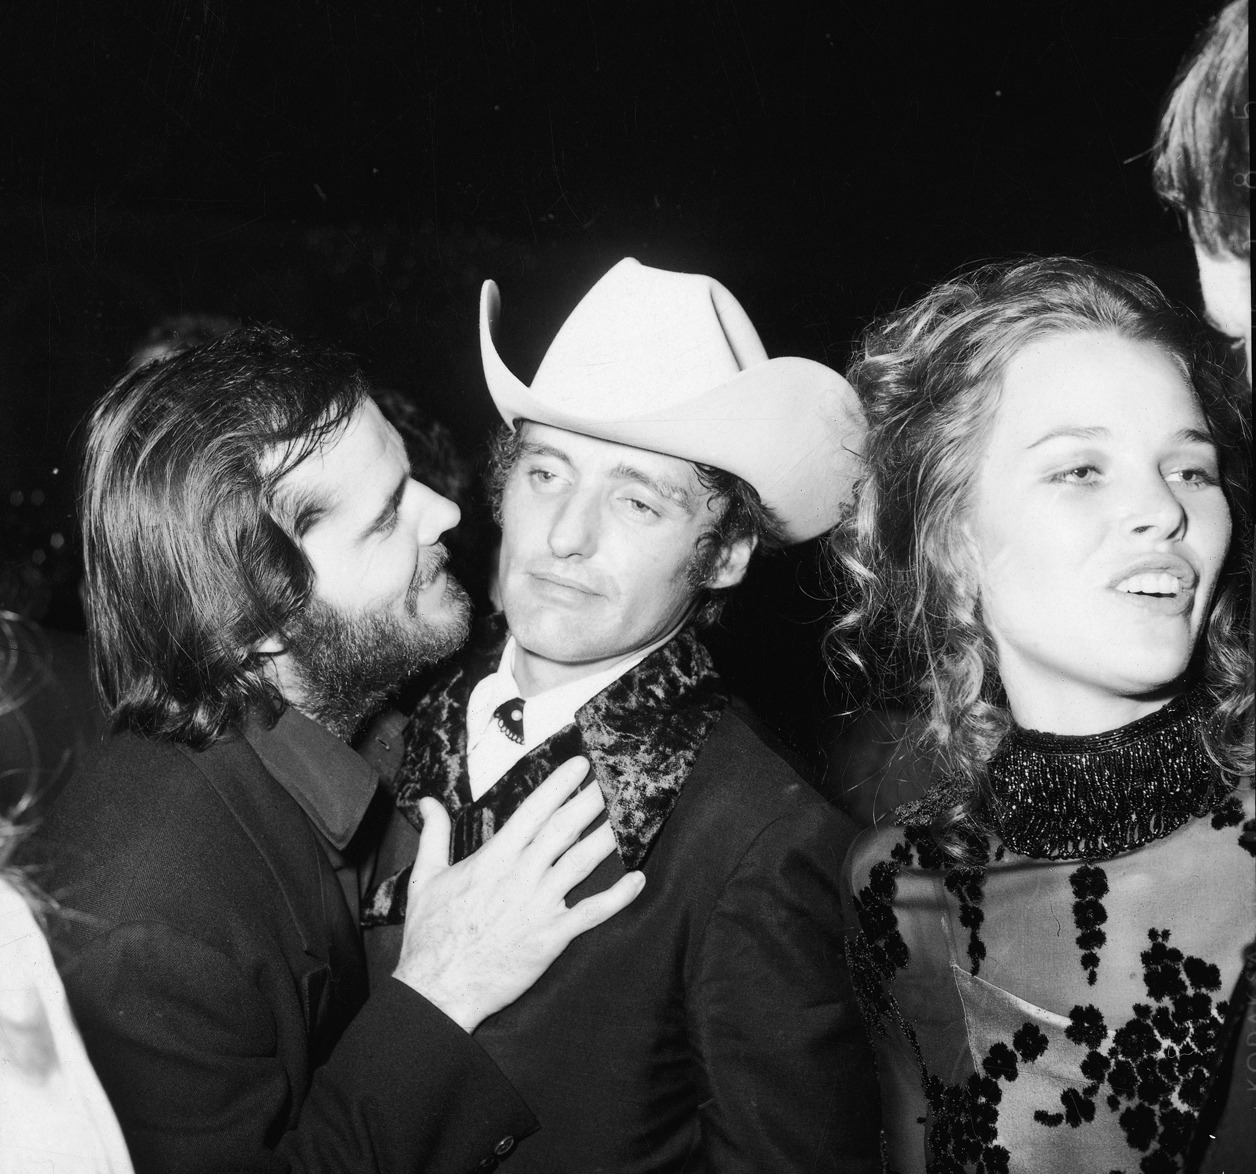 Jack Nicholson, Dennis Hopper and Michelle Phillips